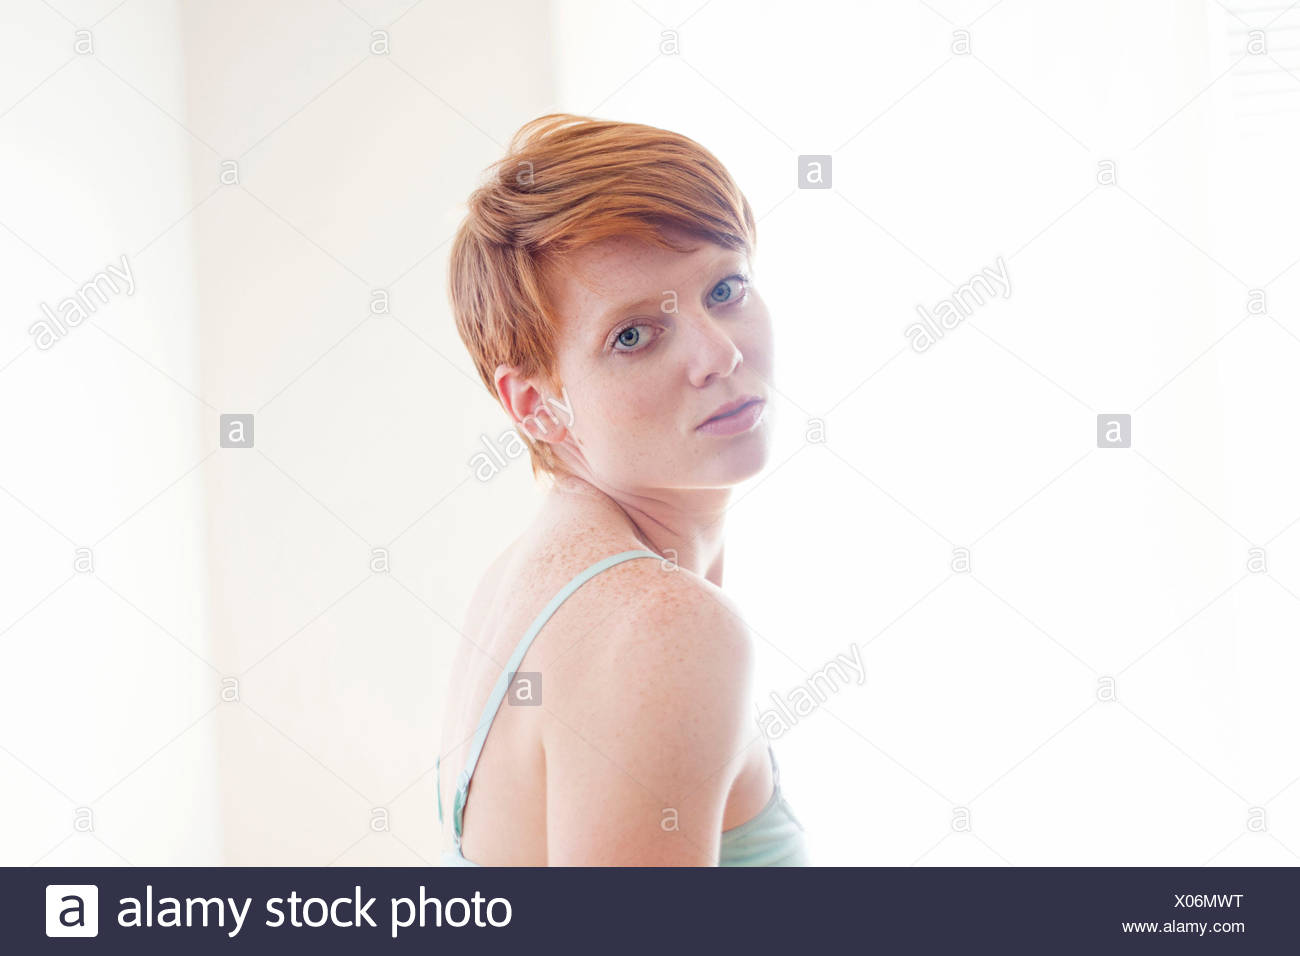 Red headed woman - Stock Image